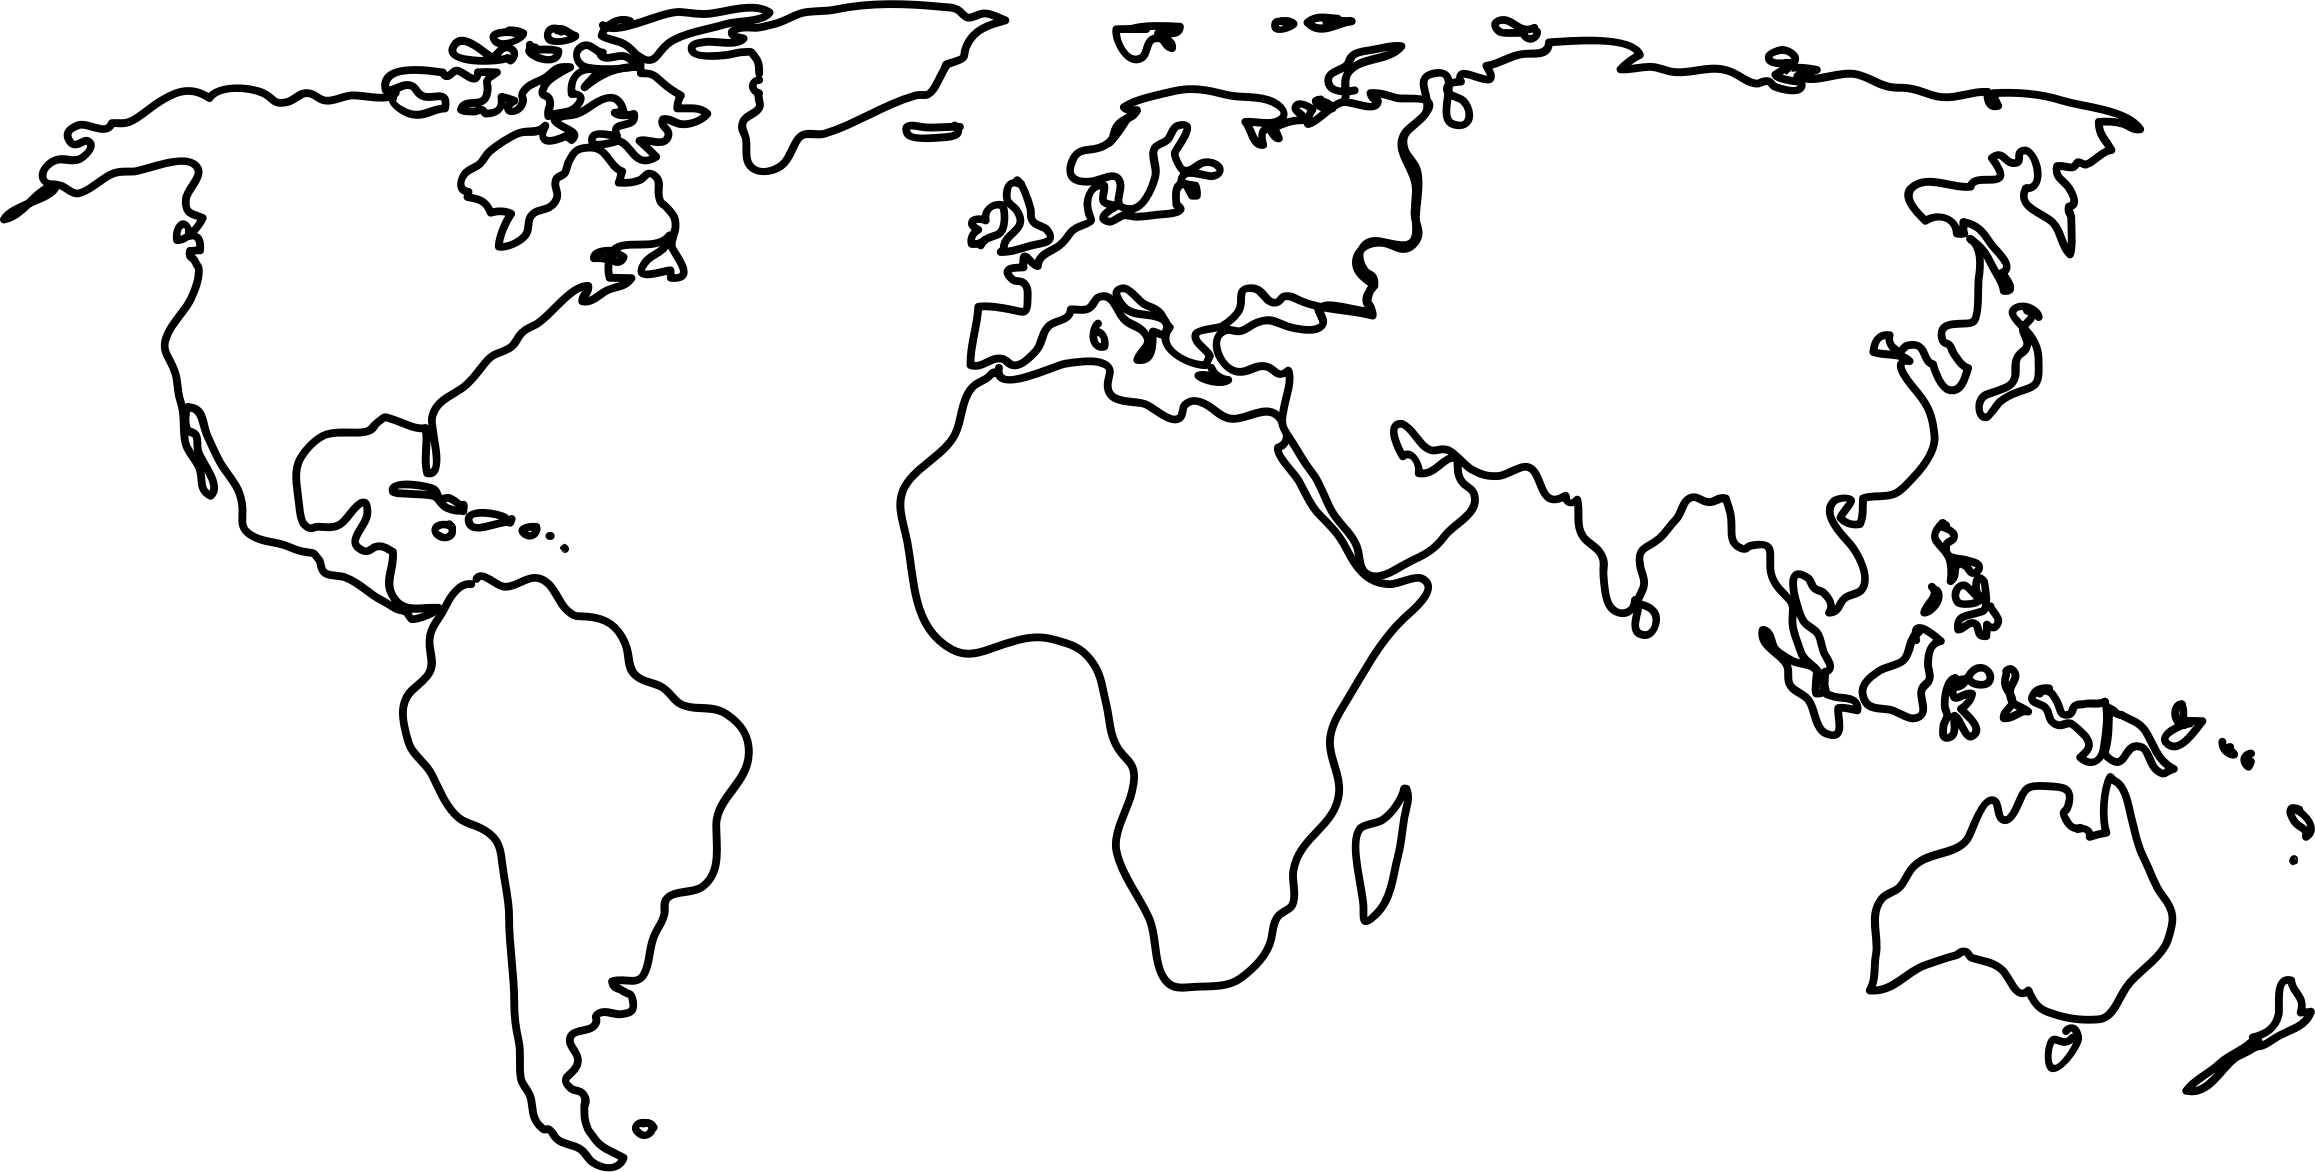 2315x1172 Map World Black And White Political World Maps Outline Map